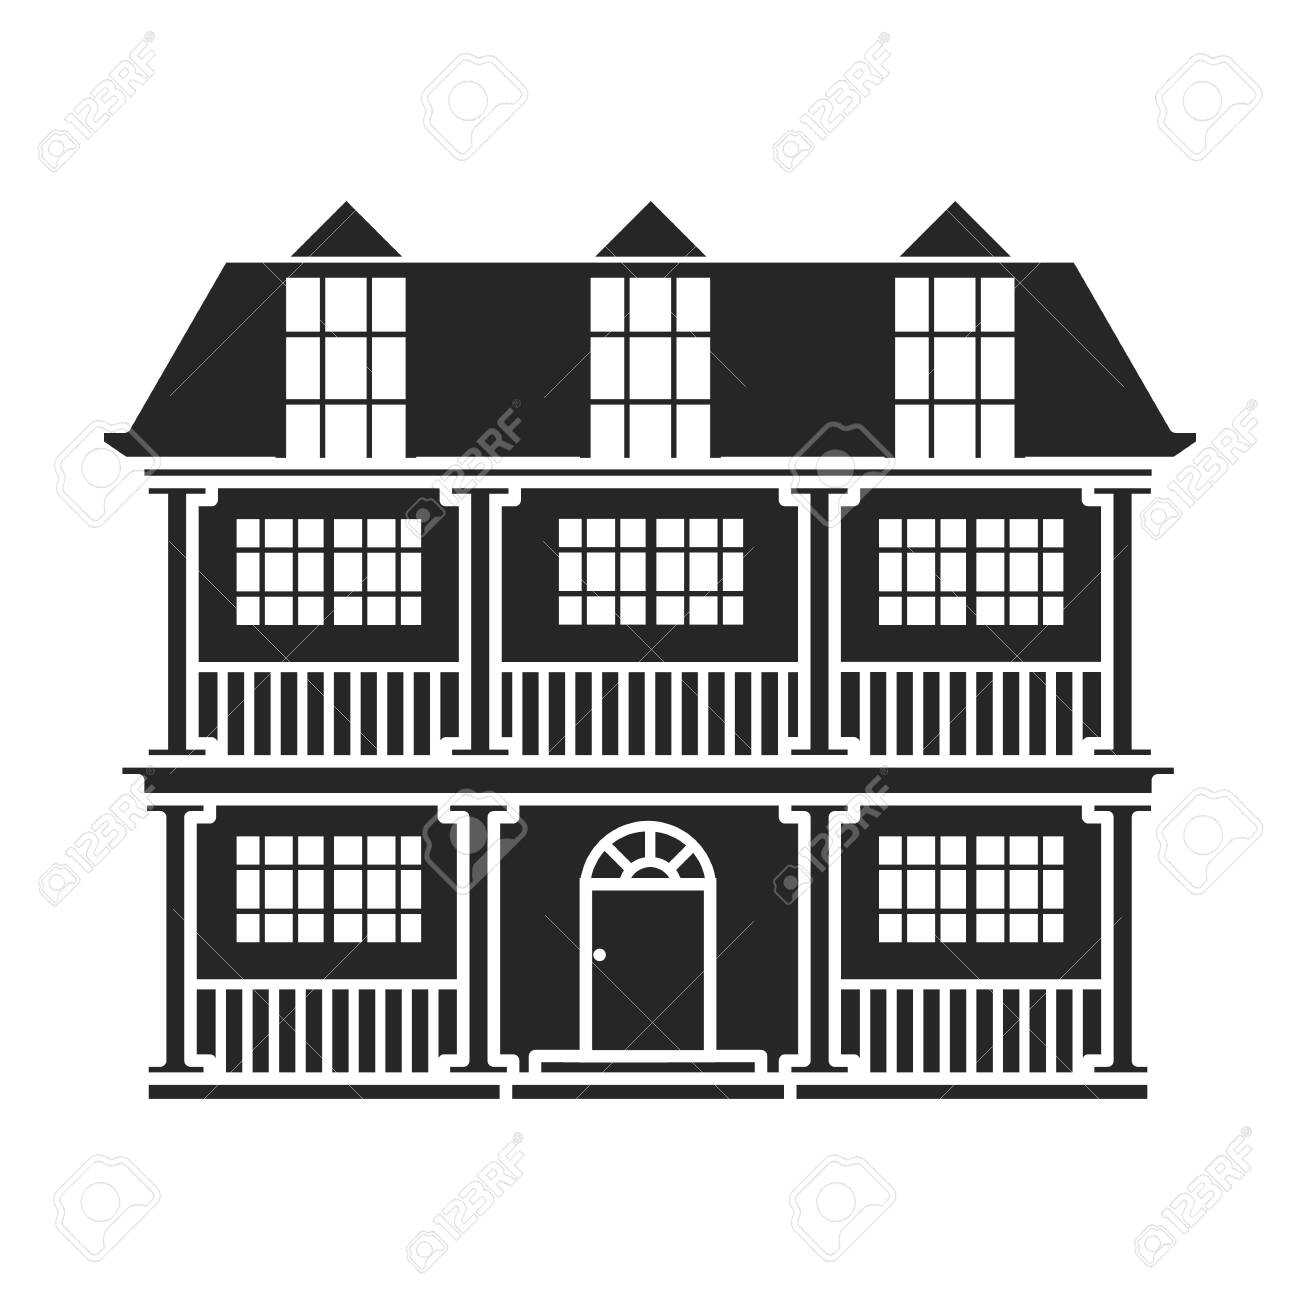 Building of apartment vector icon.Black,simple vector icon isolated on white background building of apartment. - 138760822